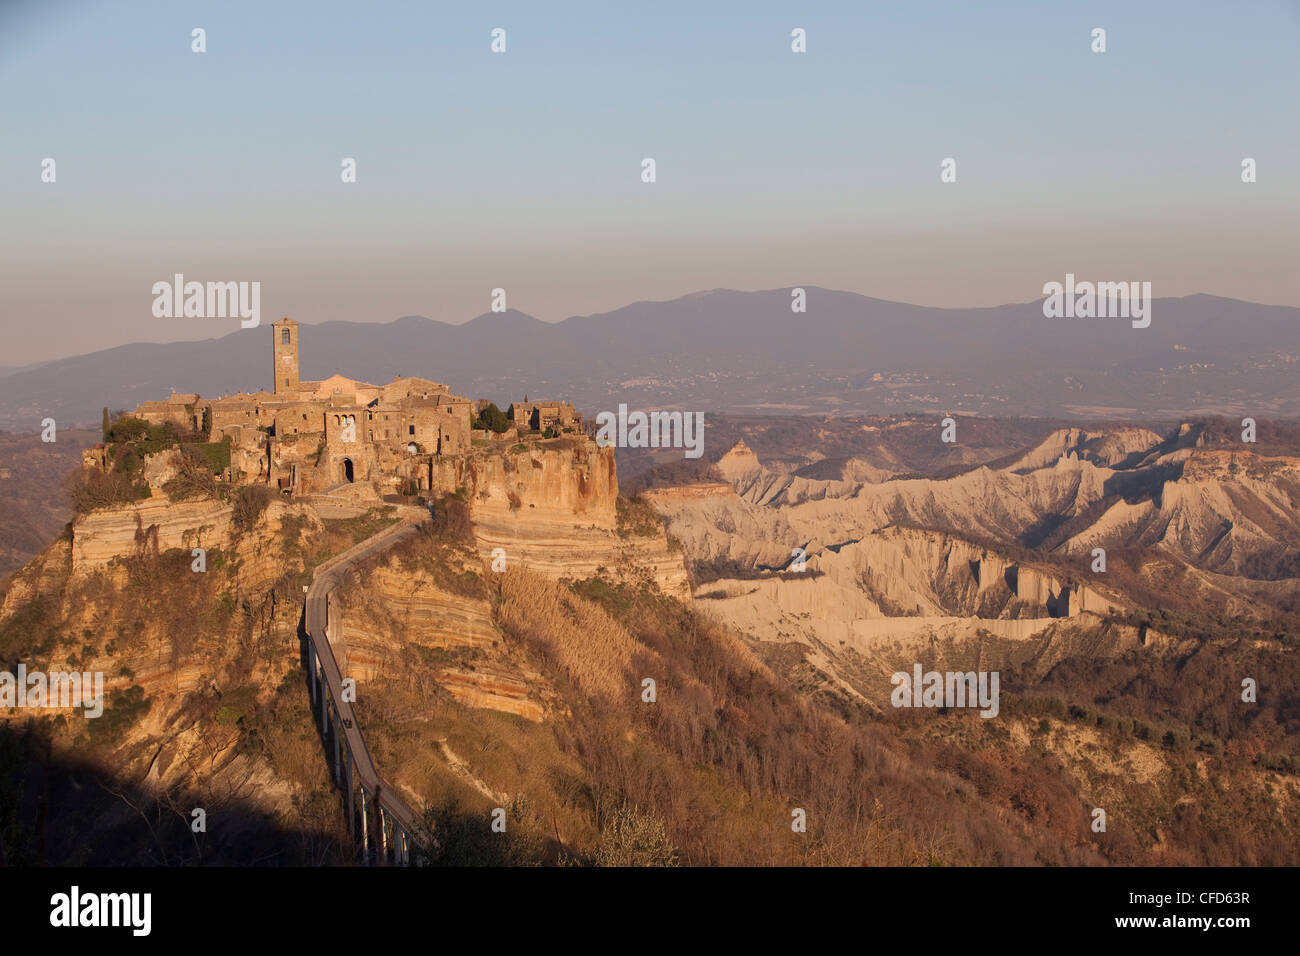 Civita di Bagnoreggio, also known as the dying city due to the slow corrosion of the tufa, Italy, Europe - Stock Image